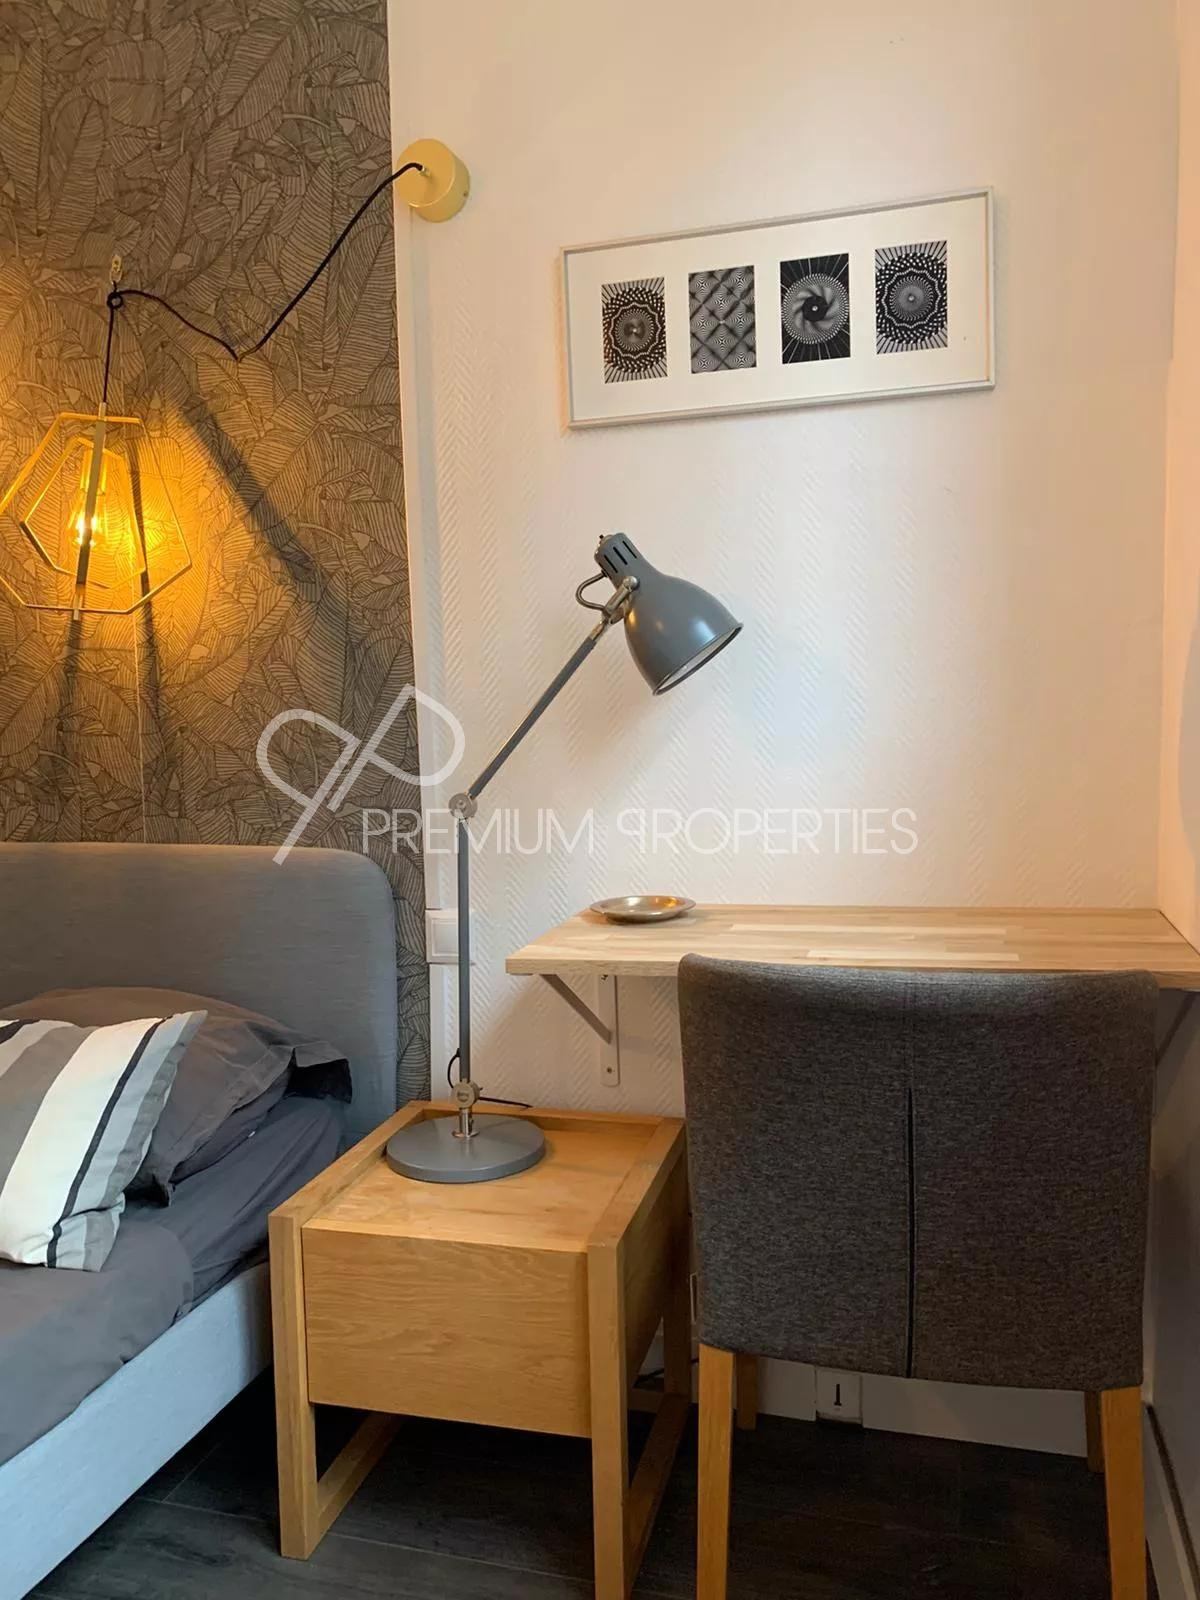 Petit Juas - Immaculate 1 bed-appartment